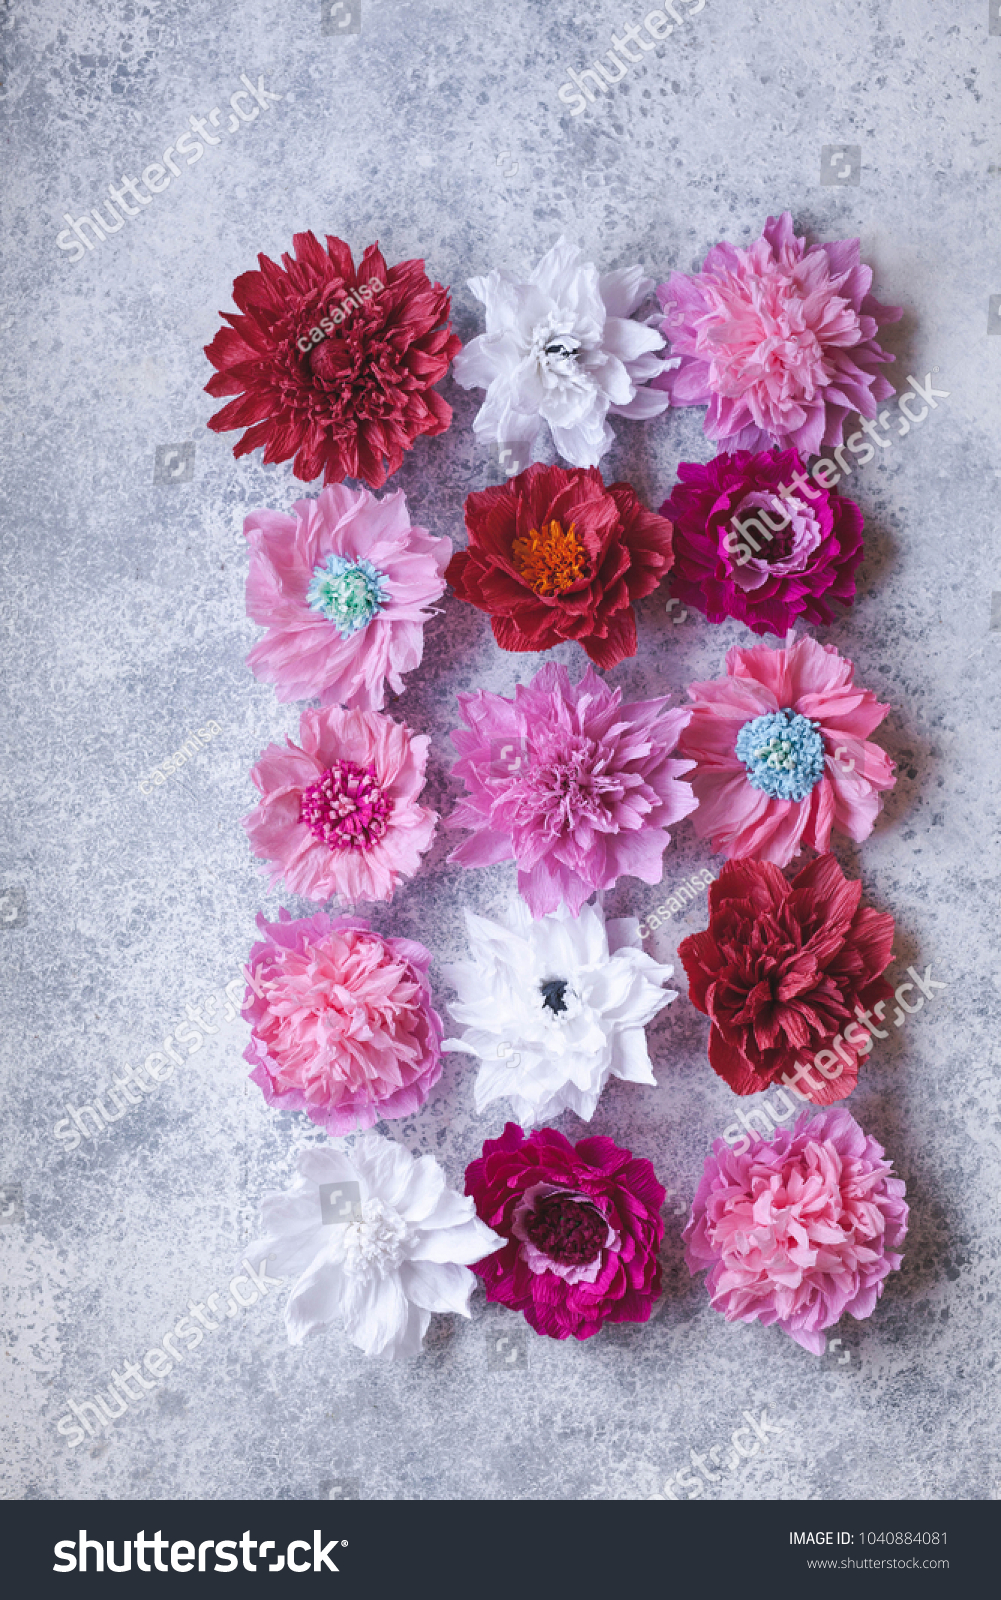 Wallpaper Crepe Paper Flowers Background Peones Stock Photo Edit